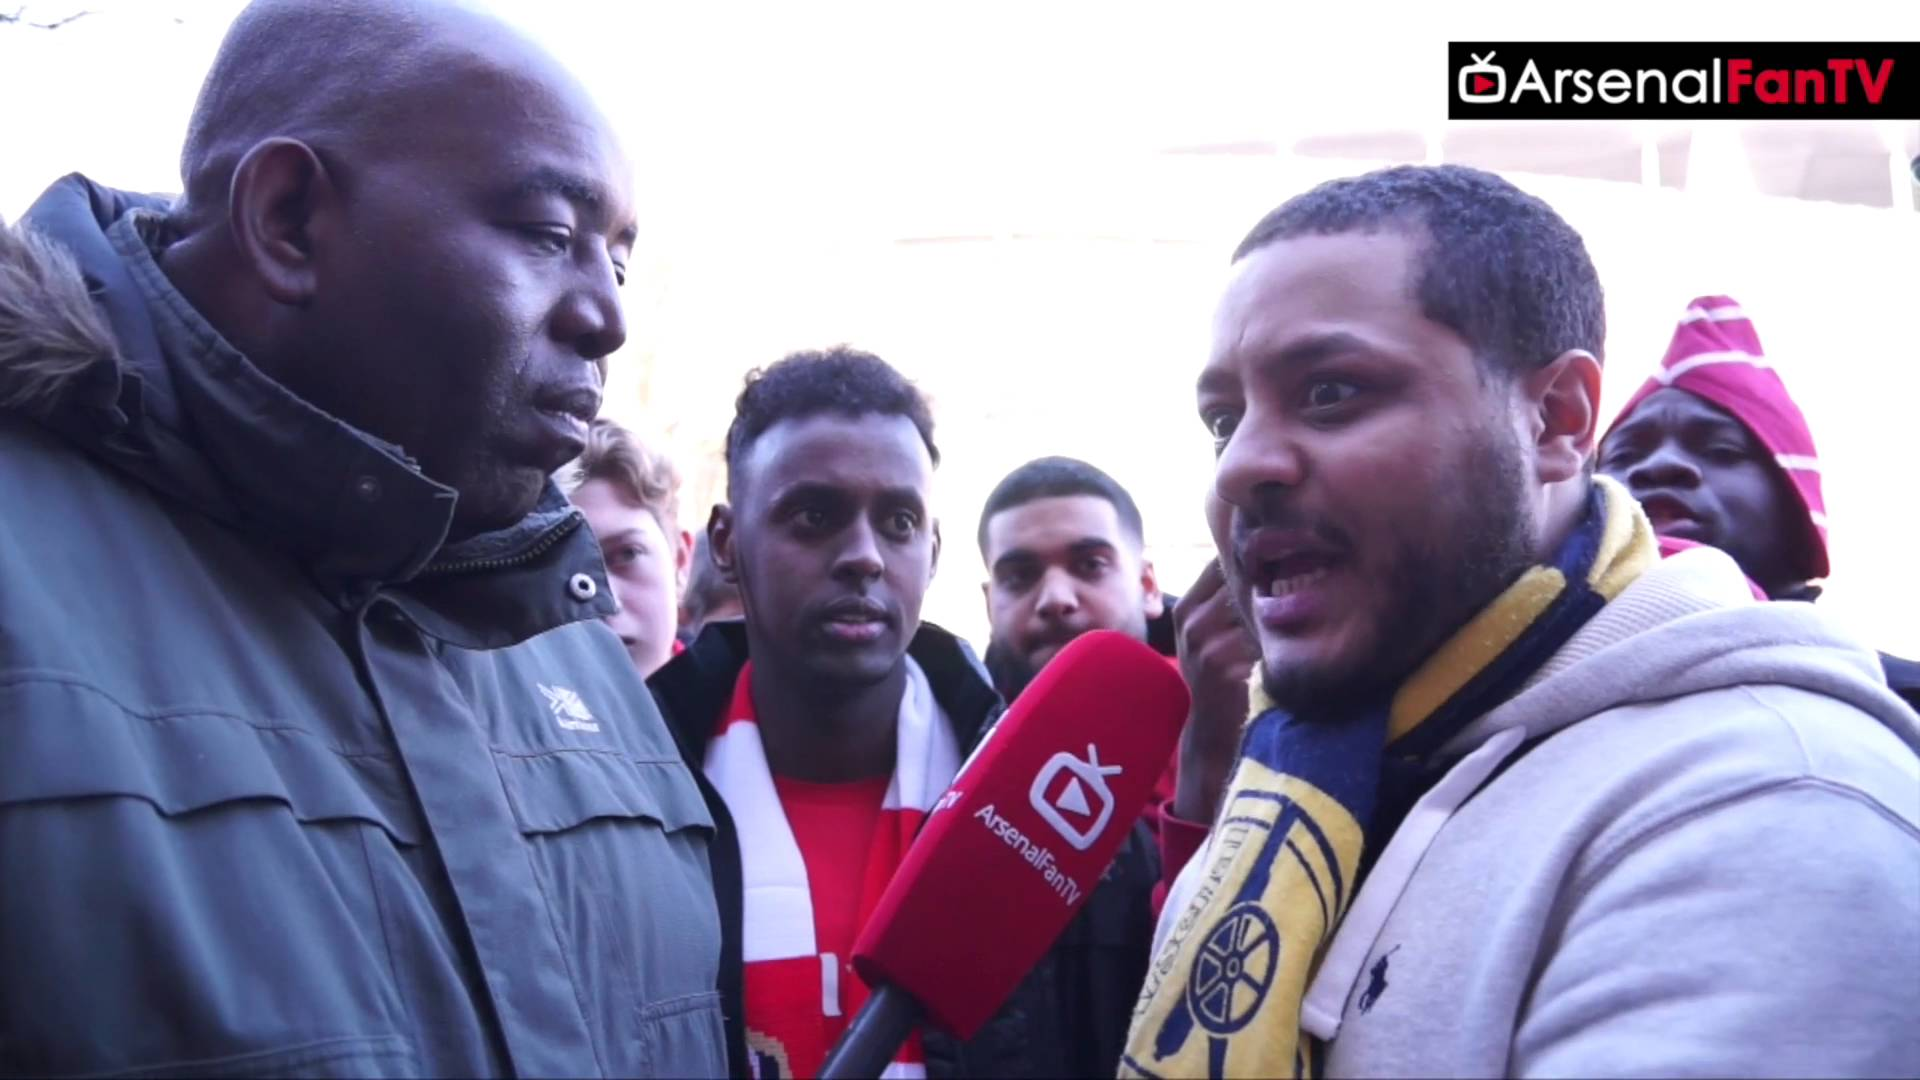 All Arsenal Players Care About Is SnapChat & Instagram (Rant)